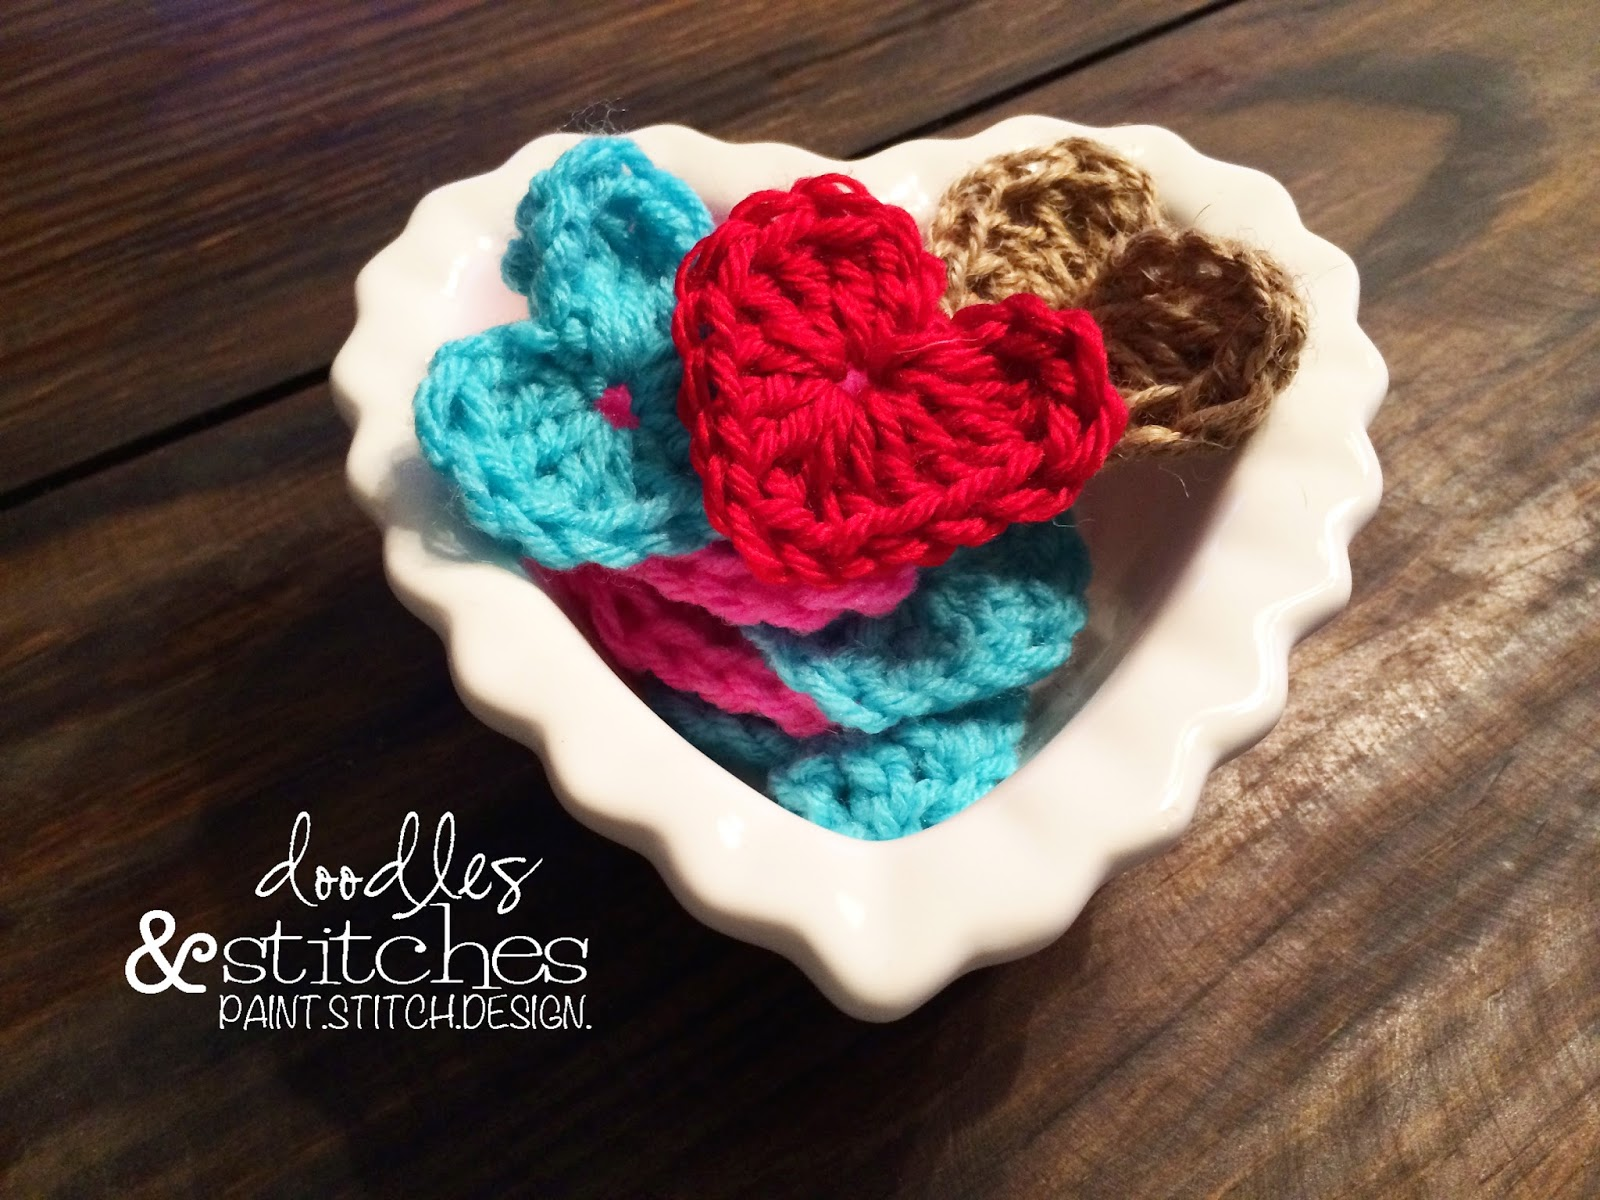 How To Crochet A Heart - Doodles & Stitches